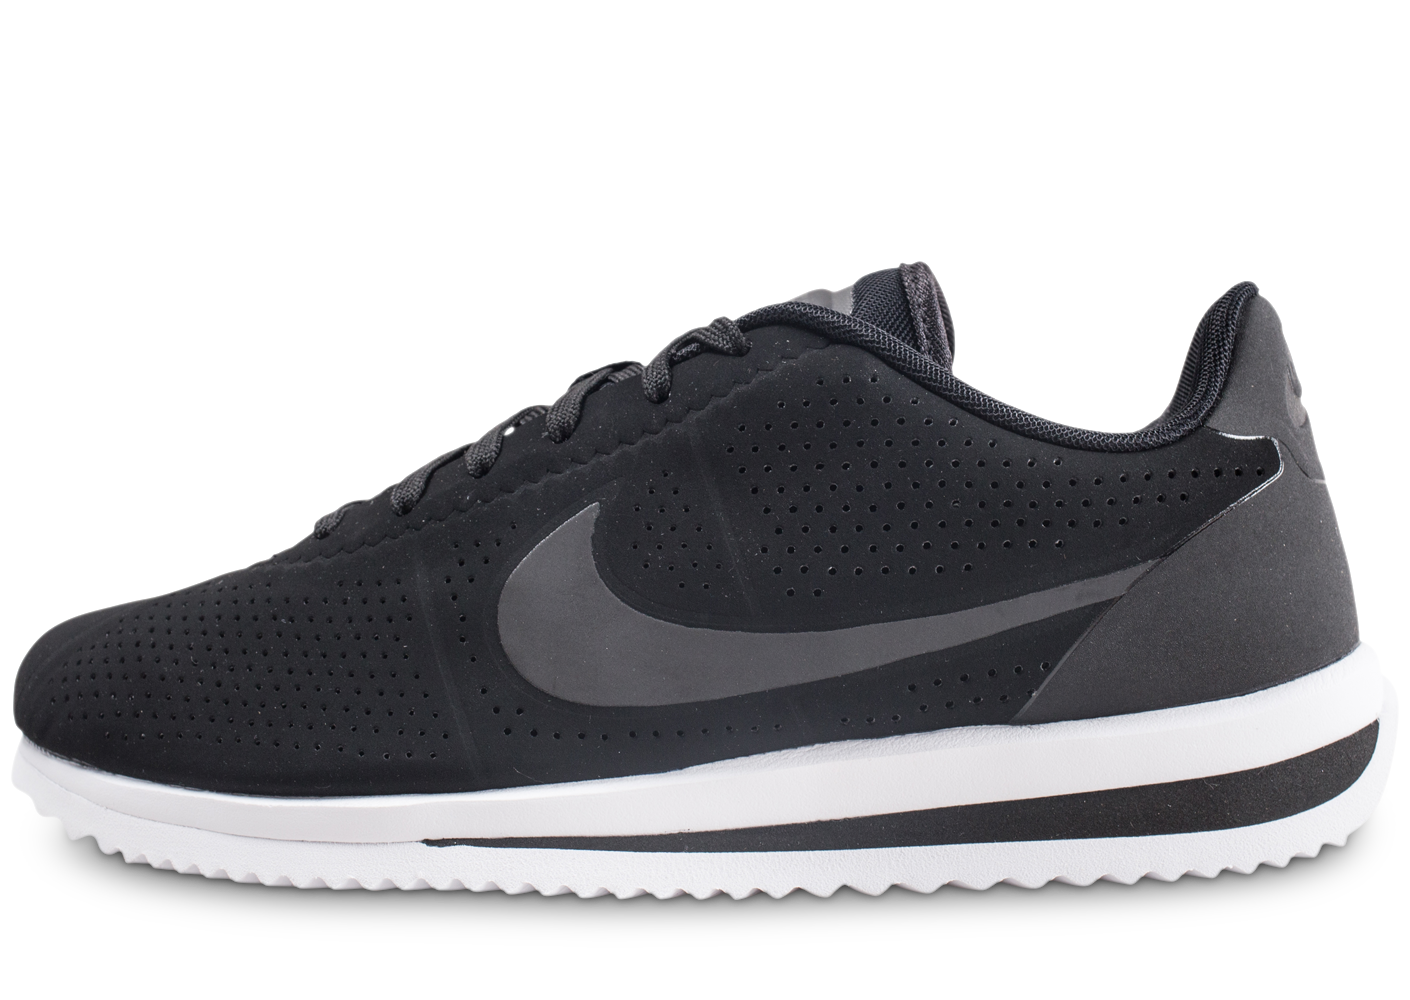 quality design 84861 bee86 Nike homme cortez ultra moire noir baskets